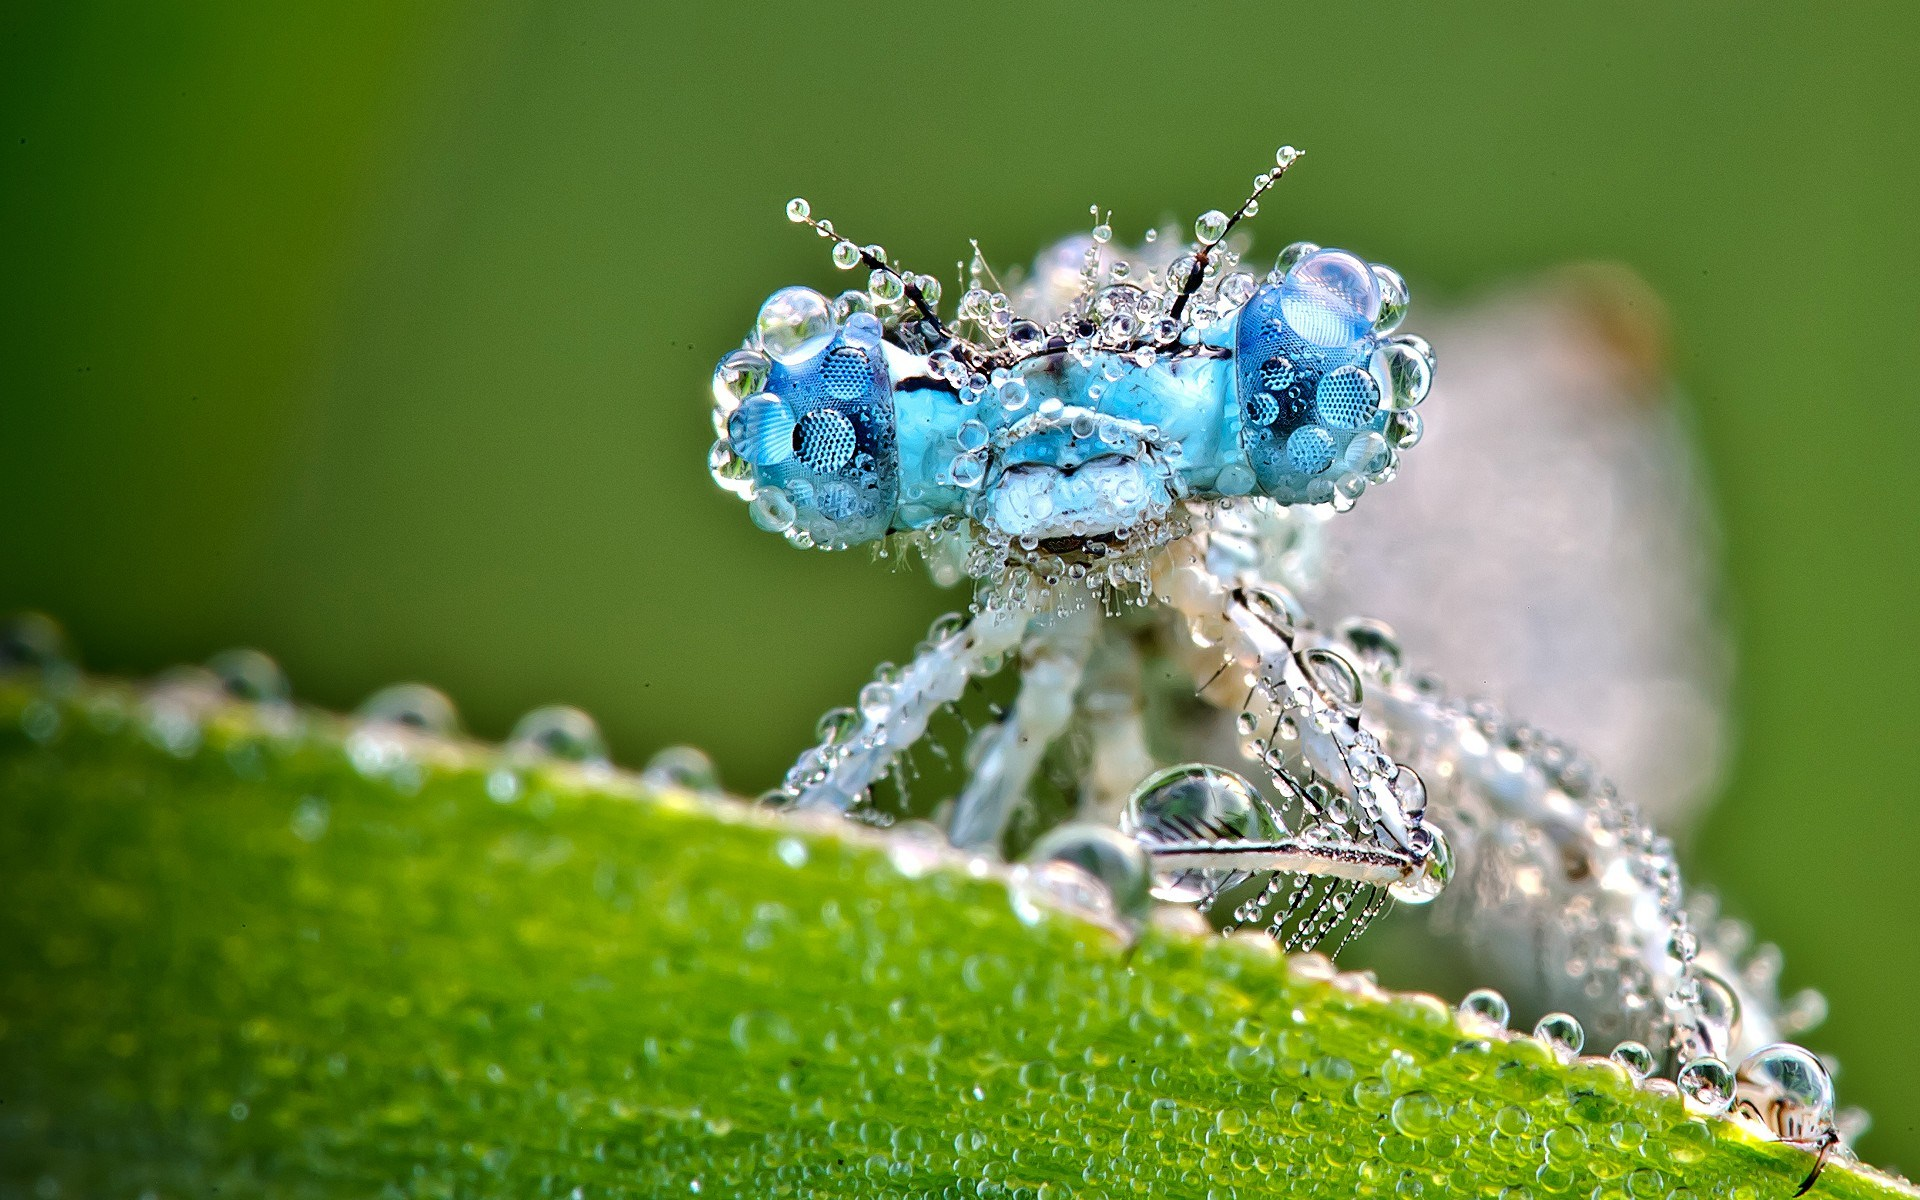 Dragonfly Insect Dew Drops